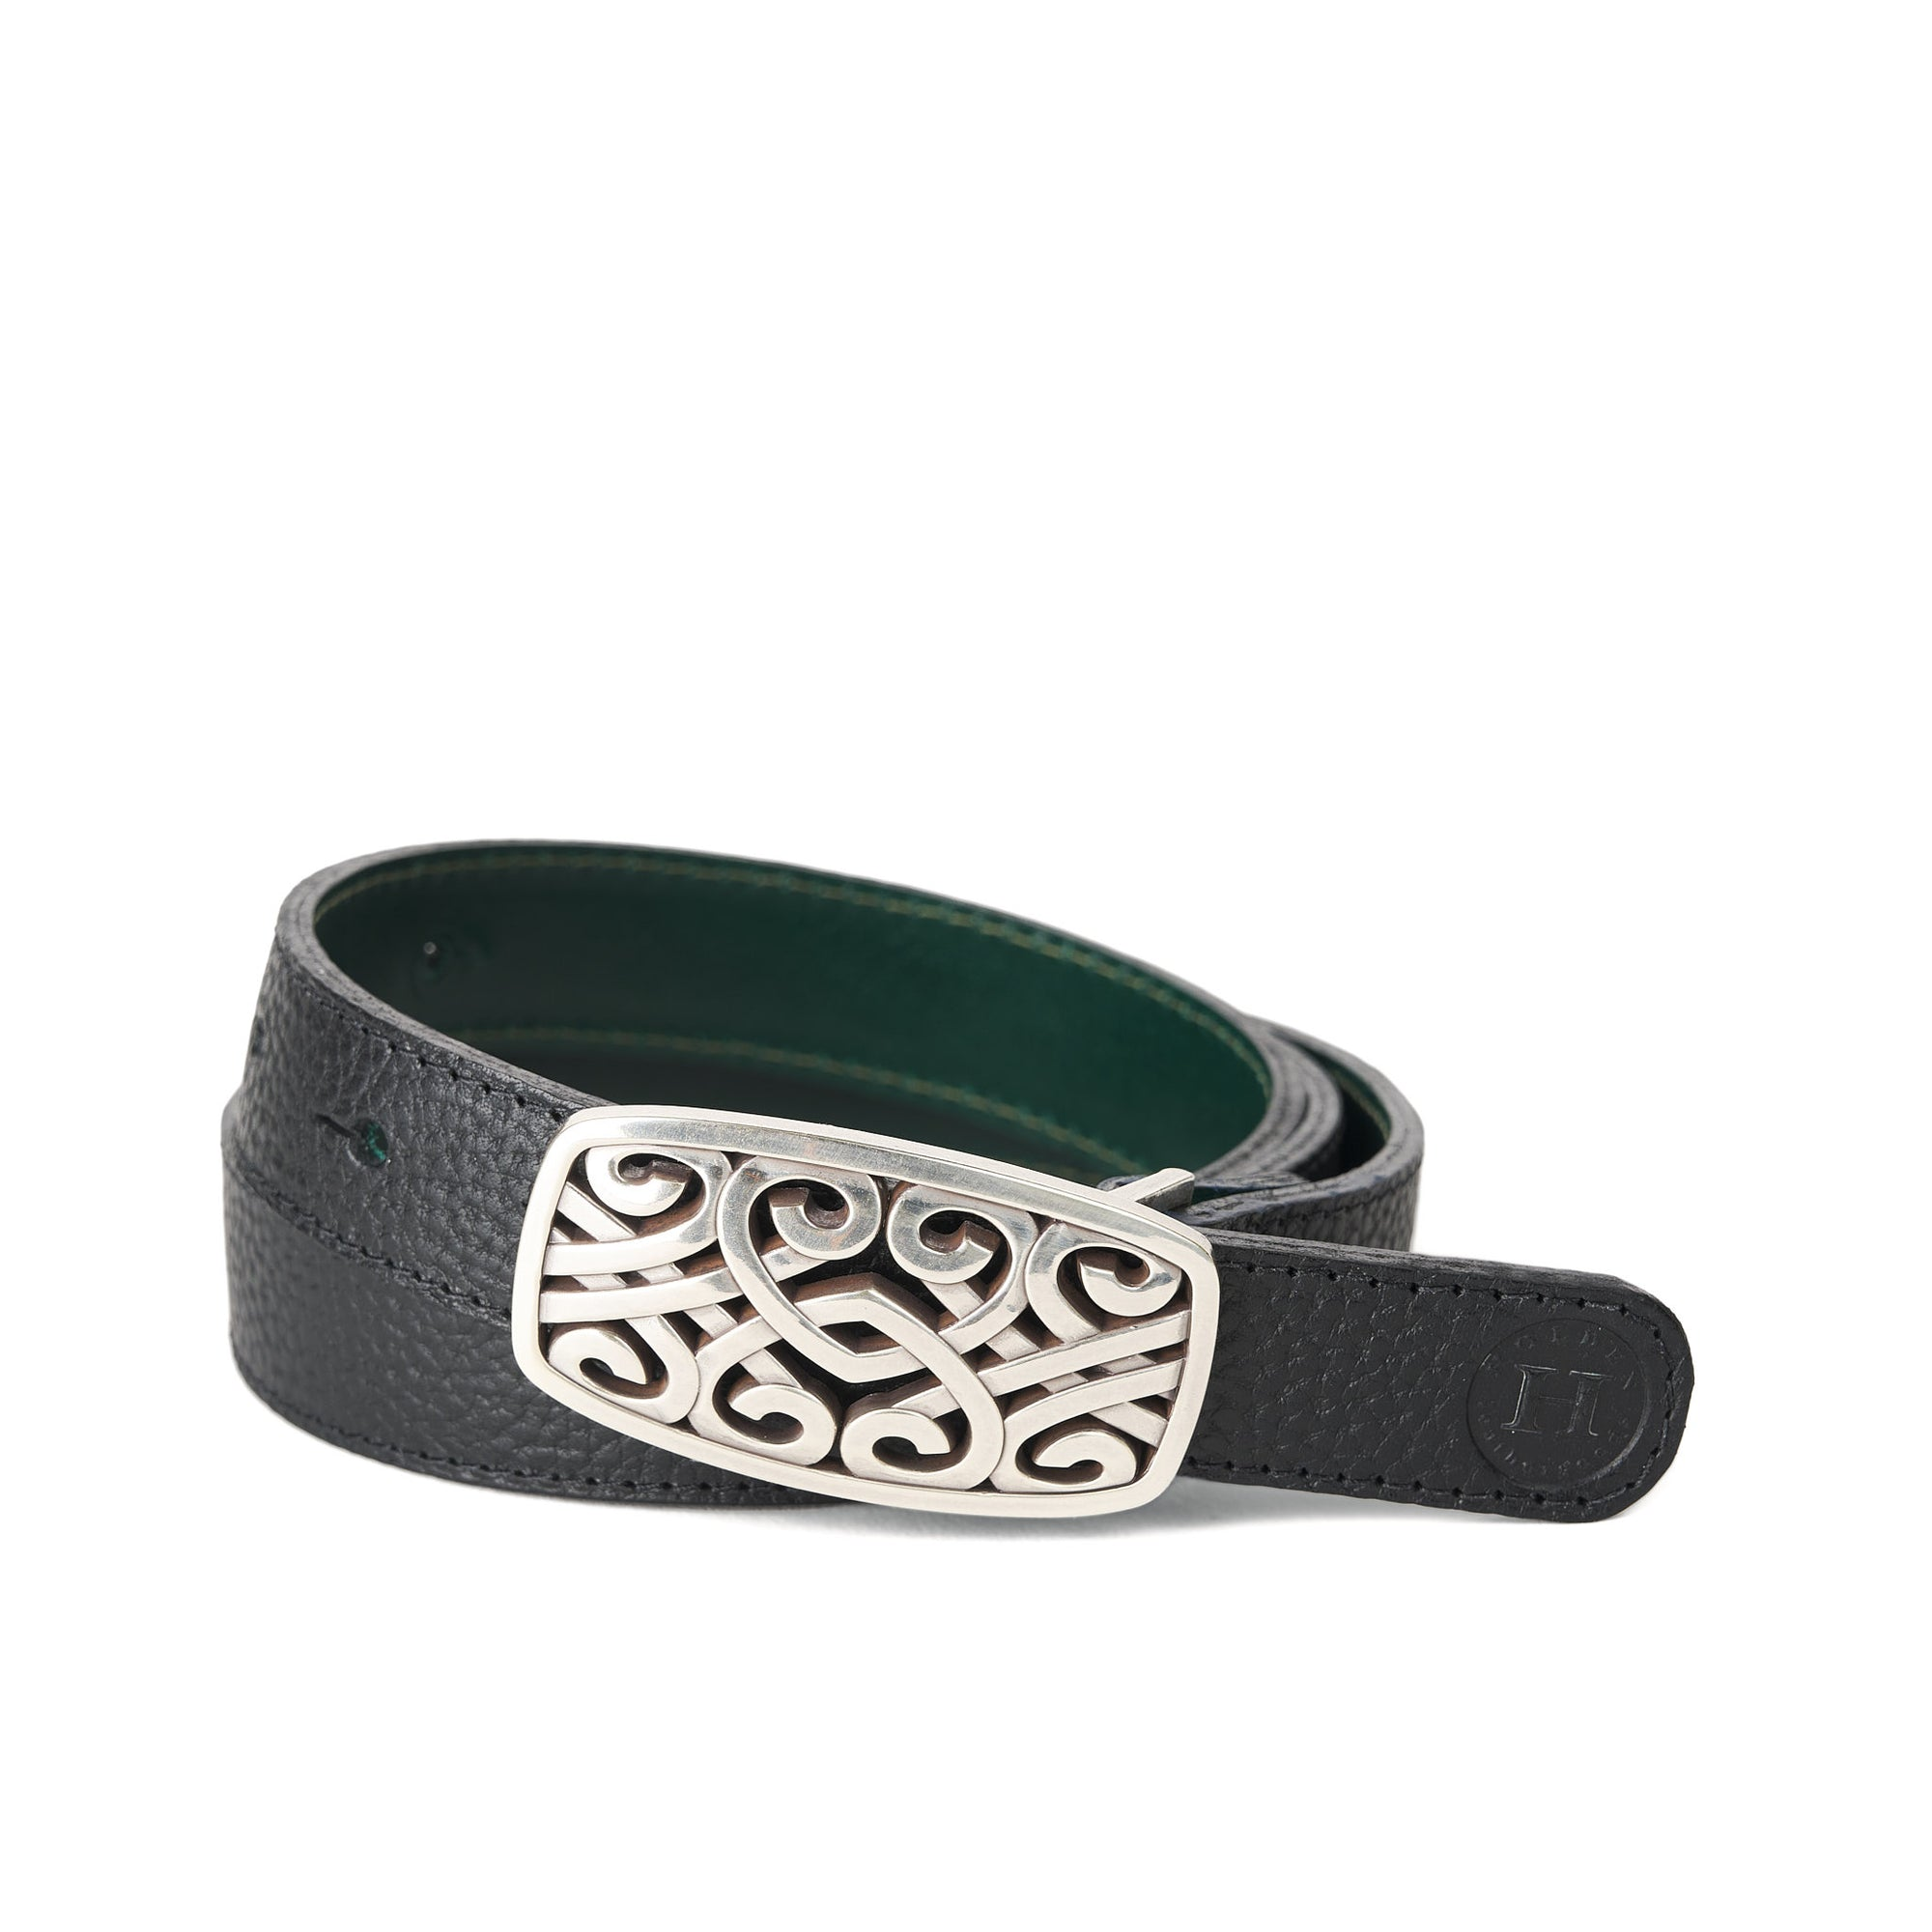 Holden Brandon Celtic Belt - Black